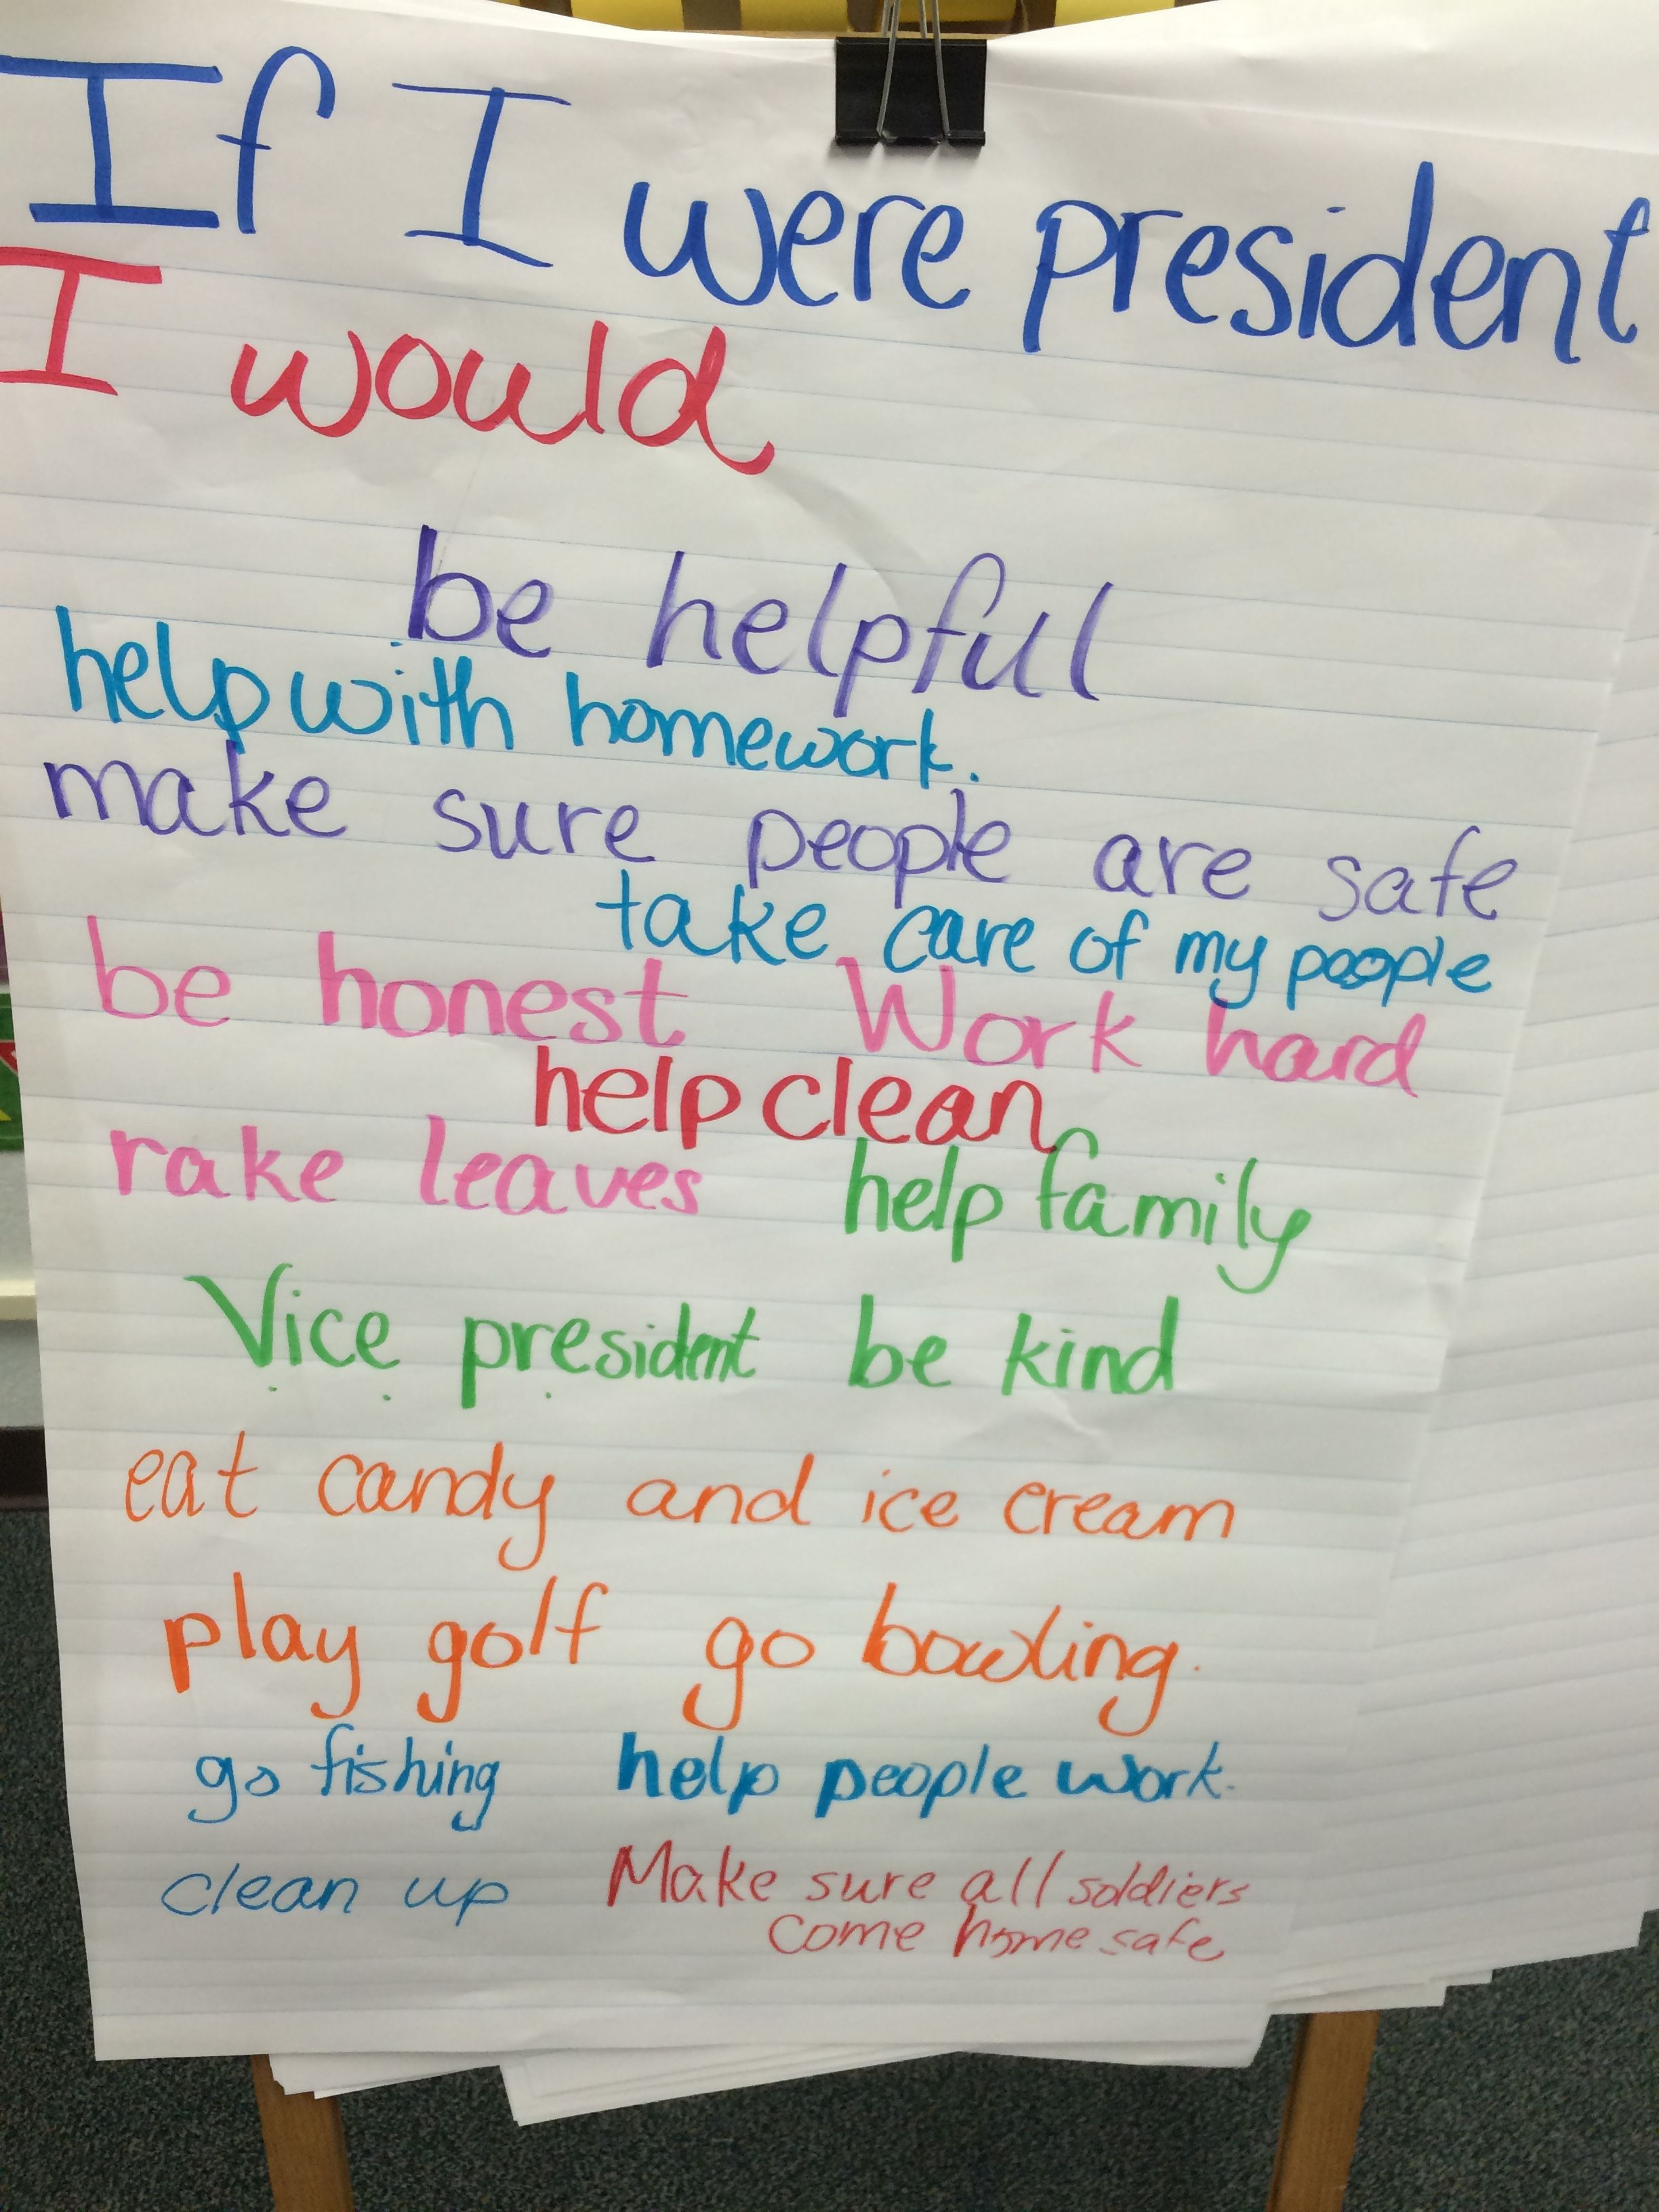 president s day if i were president worksheet homeschool president s day if i were president worksheet homeschool giveaways preschool homeschool presidents day and presidents